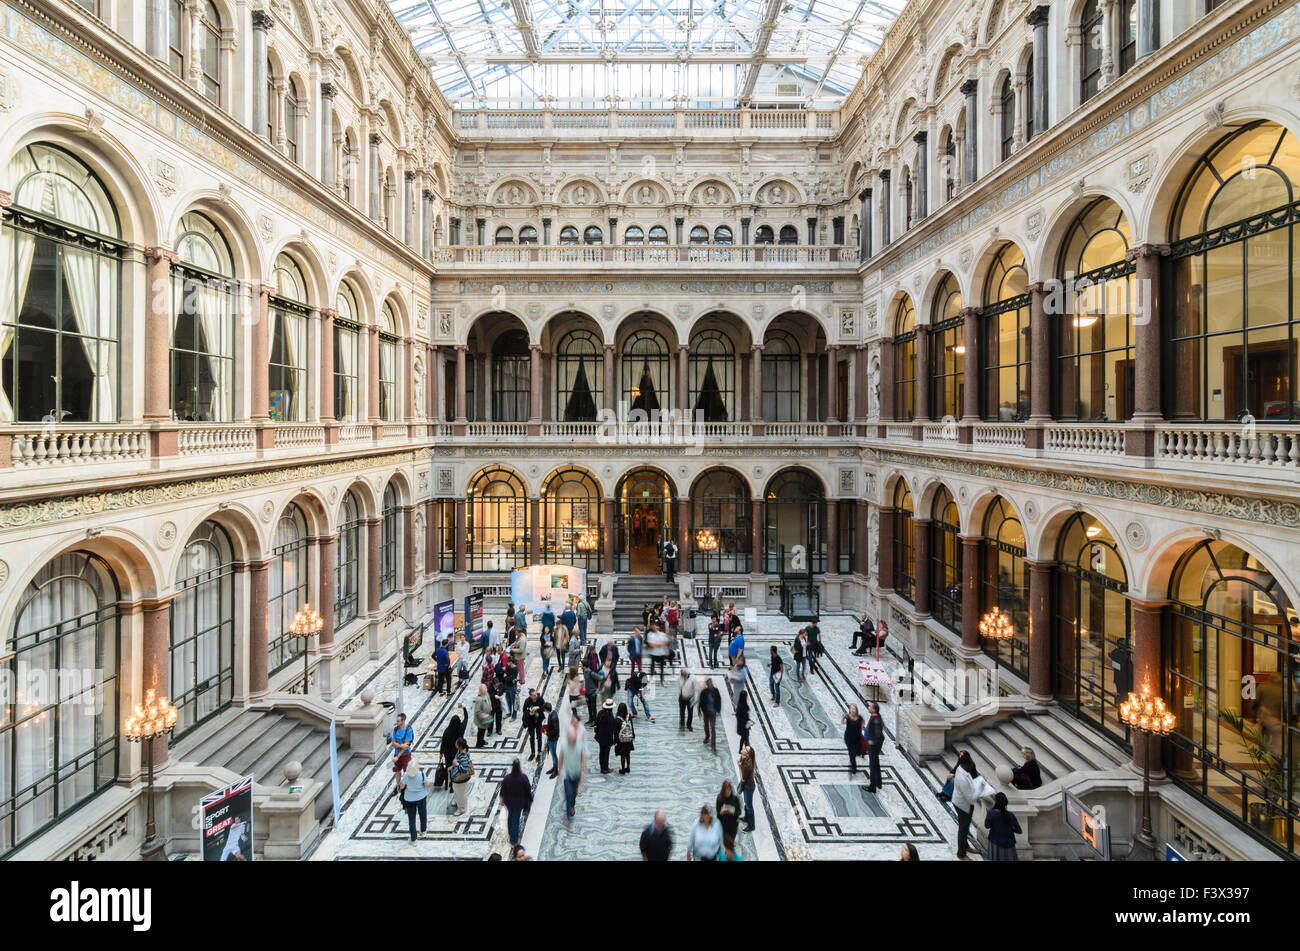 The Durbar Court inside the Foreign and Commonwealth Office, Lancaster House, Whitehall, London, England, U.K. - Stock Image